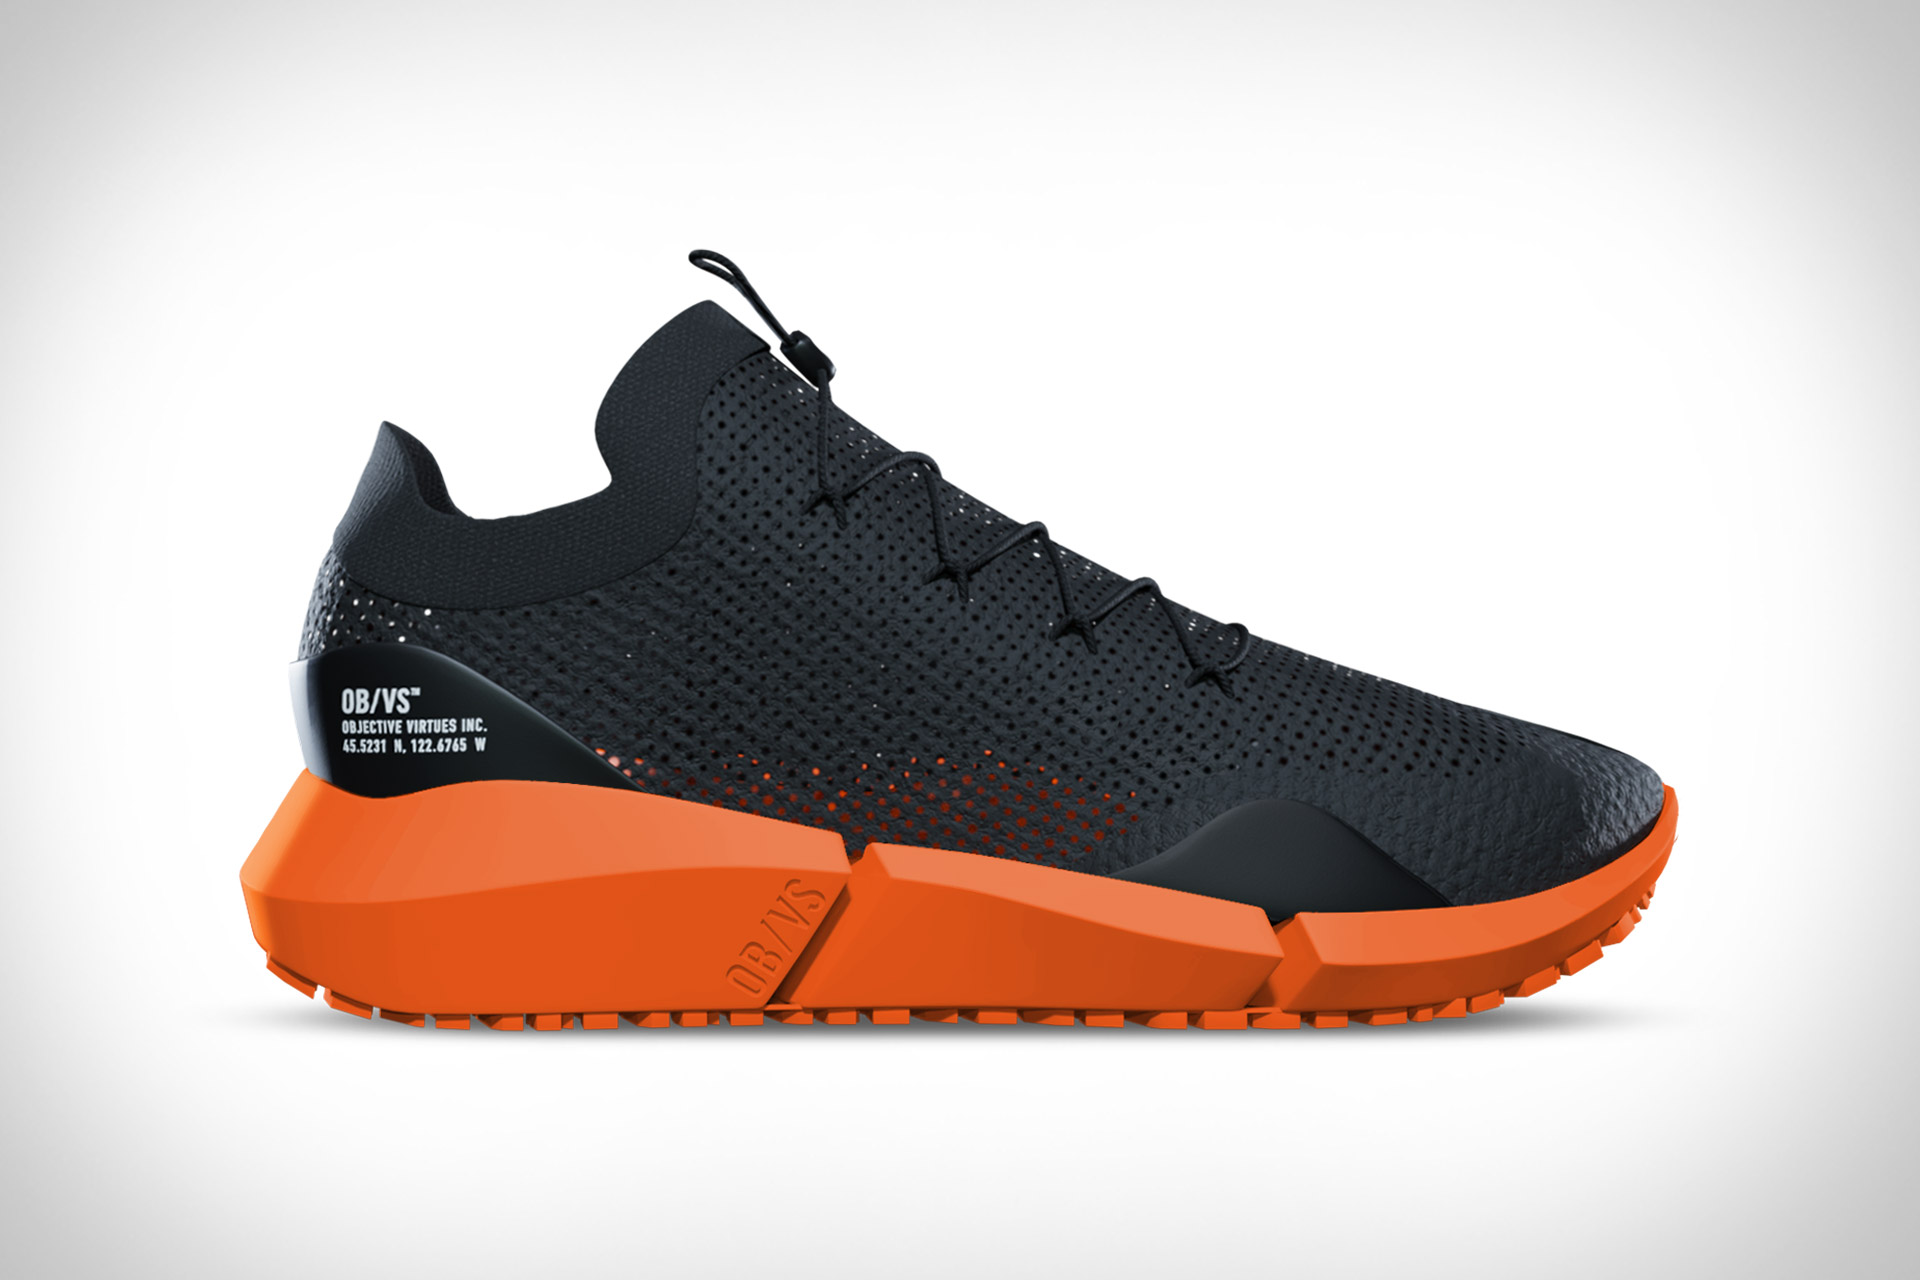 OBVS/ADPT™: The World's First Climate Adaptable Sneaker